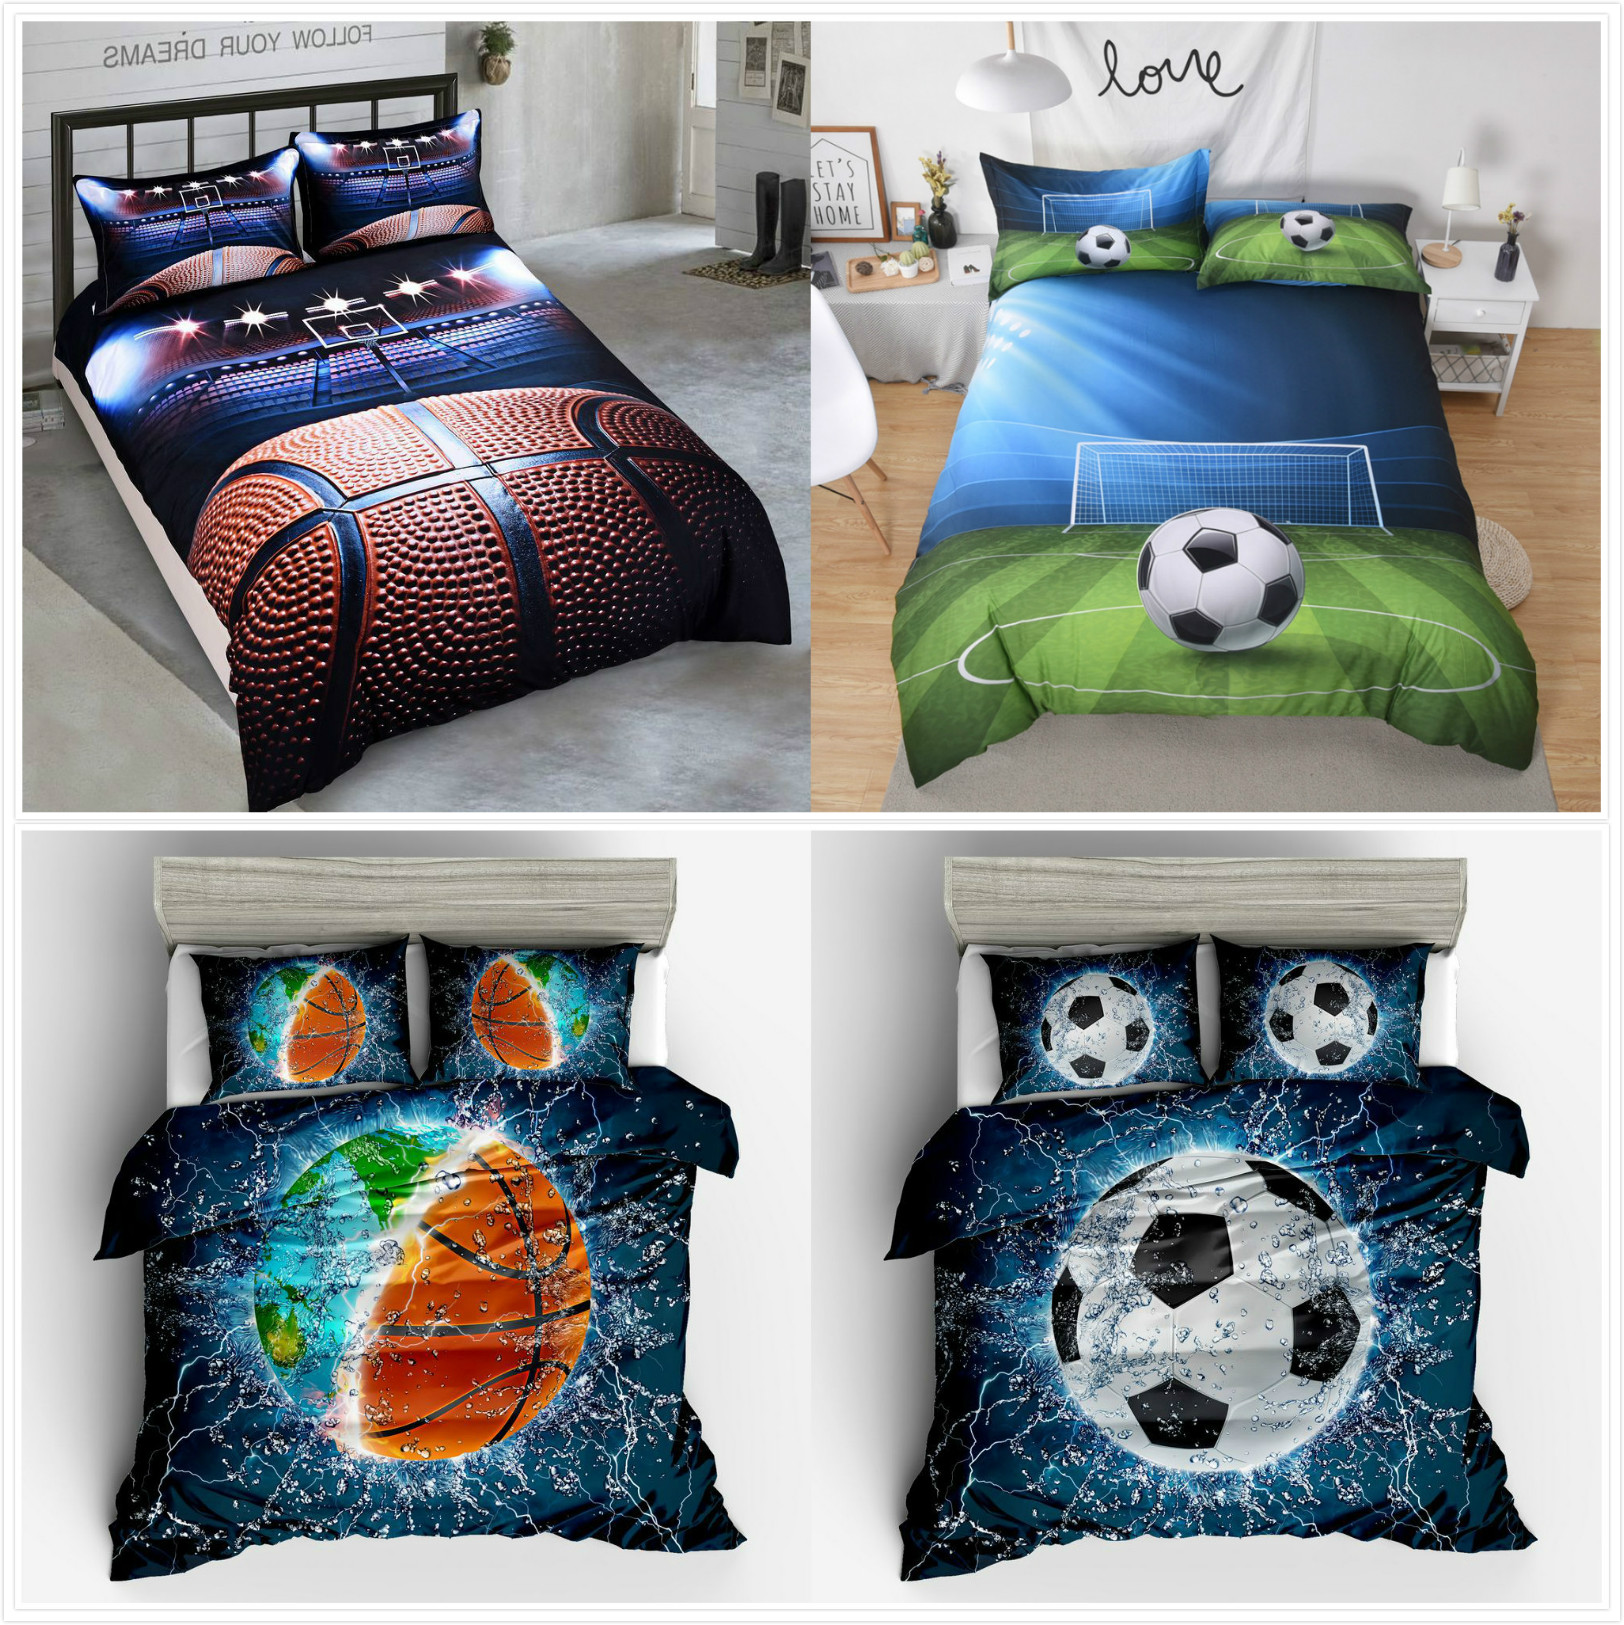 Home Textile Duvet Cover Cool basketball football cartoon 2/3pcs British Style Family student dormitory Quilt cover pillowcaseHome Textile Duvet Cover Cool basketball football cartoon 2/3pcs British Style Family student dormitory Quilt cover pillowcase